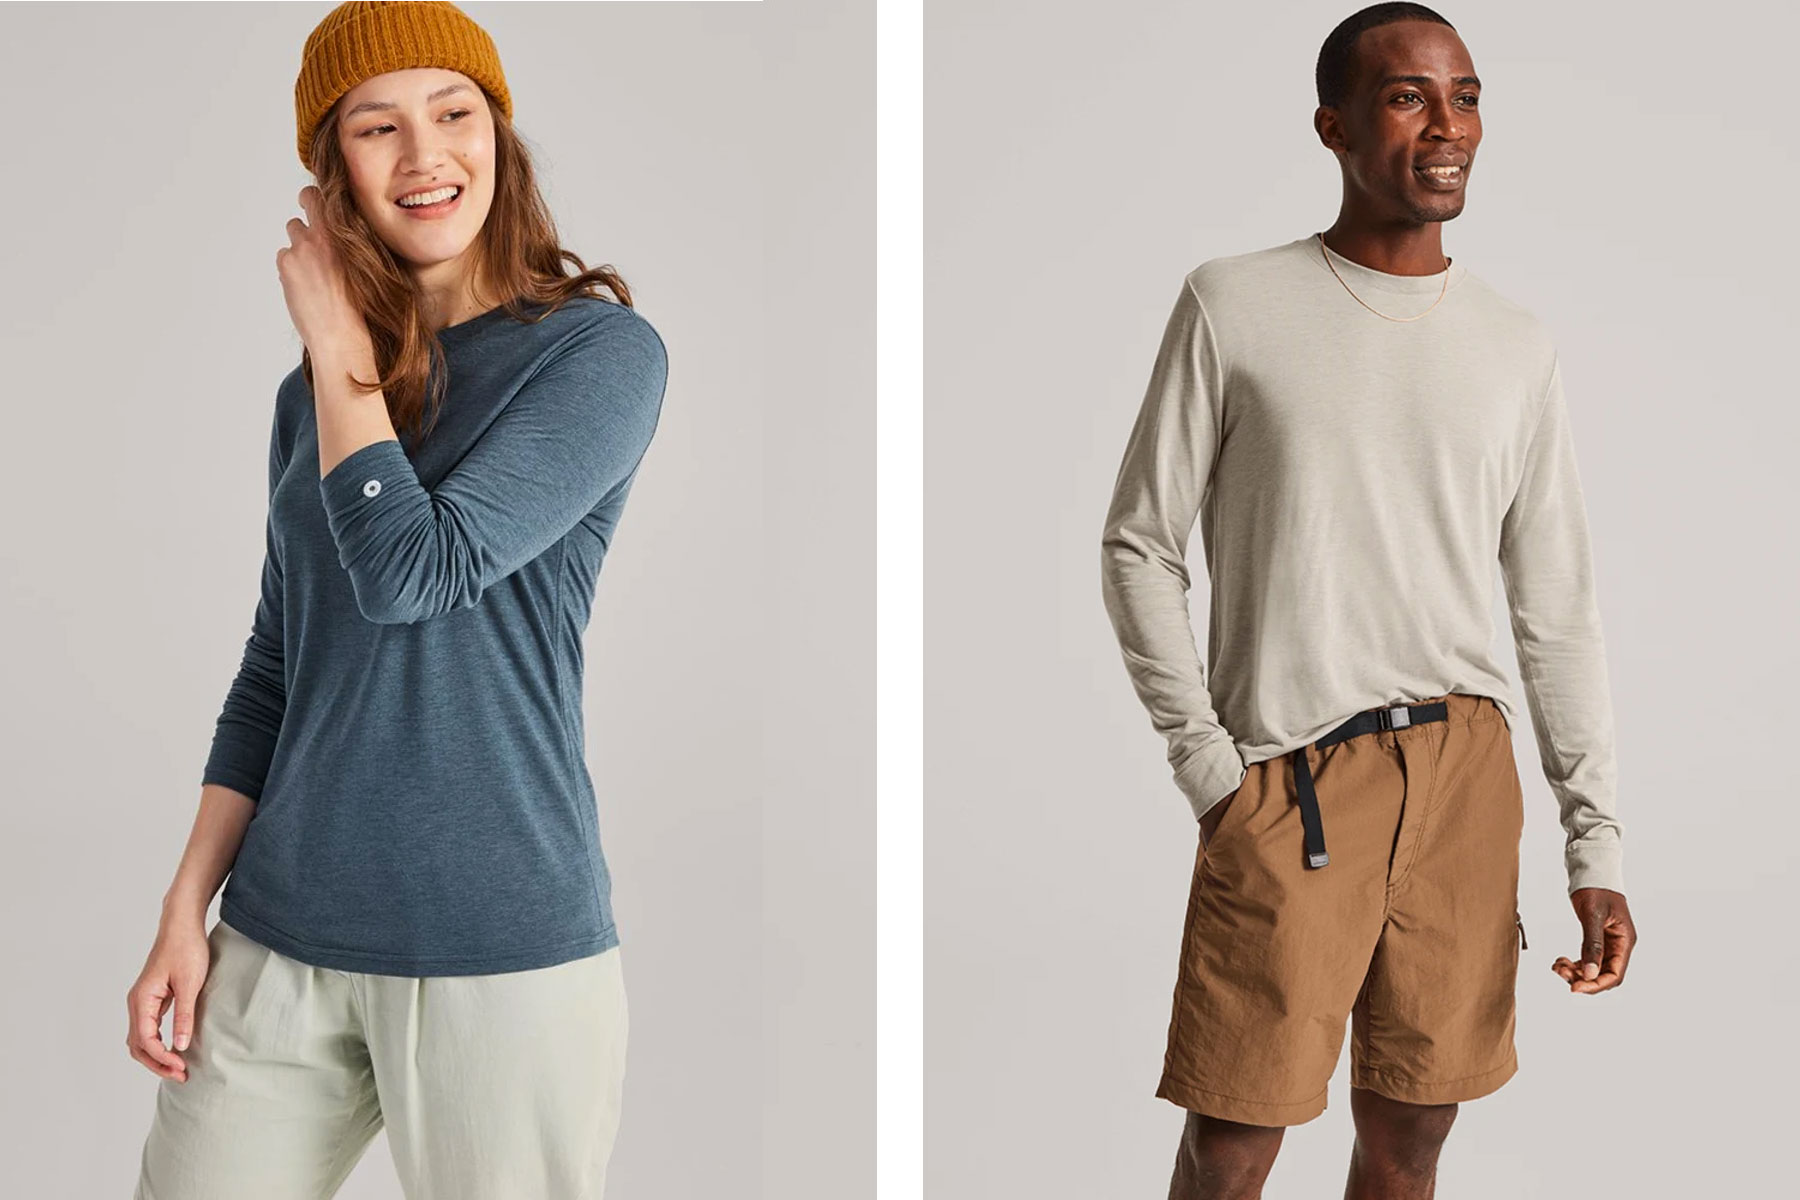 Men and women wearing long sleeve t-shirts